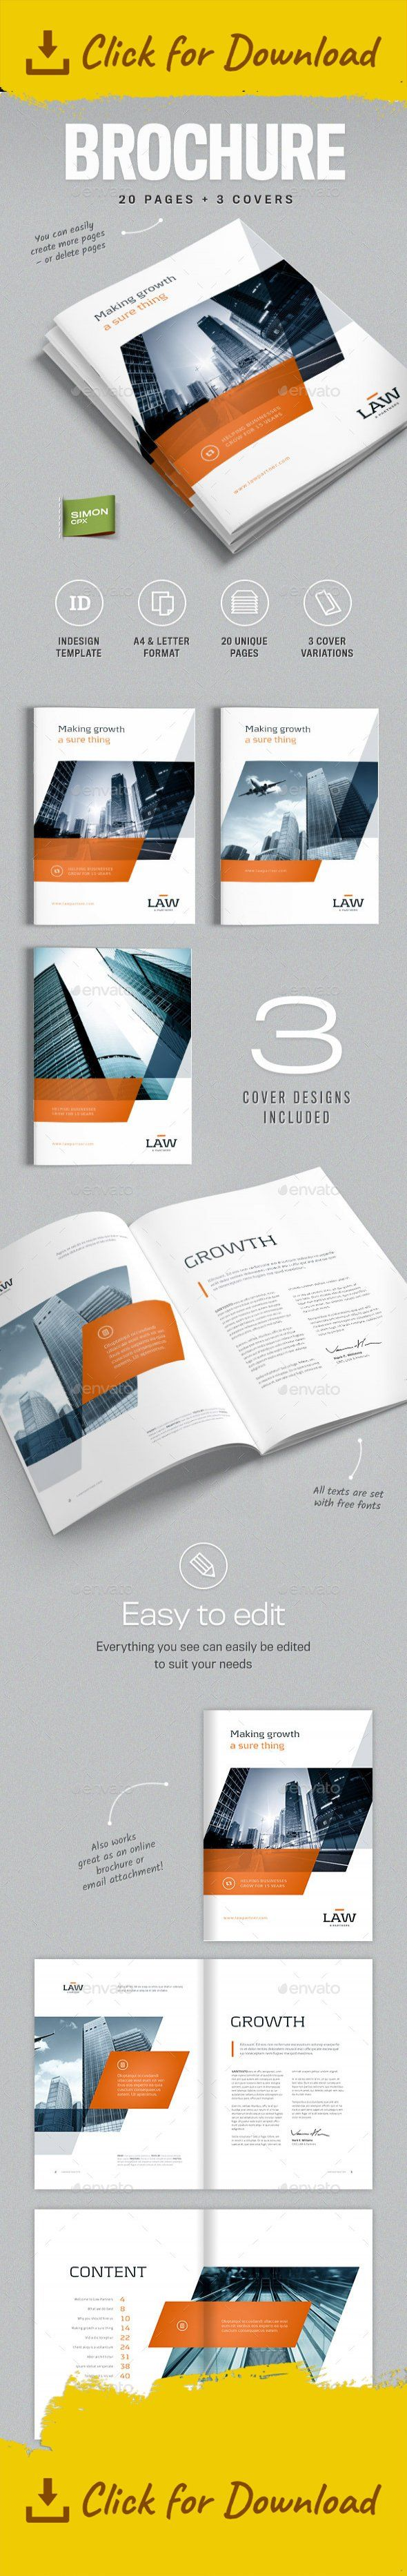 20 pages, a4, brochure, business, clean, corporate, customisable, customize, design, easy, editable logo, elegant, format, free fonts, indesign, letter, logo, modern, orange, PDF file, print ready, simple, stylish, template         Business Brochure – A4 and Letter – 'LAW' Professional, clean and modern 20 page corporate business brochure. Just drop in your own pictures and texts, and it's ready for print. Or use it as a professional online PDF or email attachment. This brochure ...